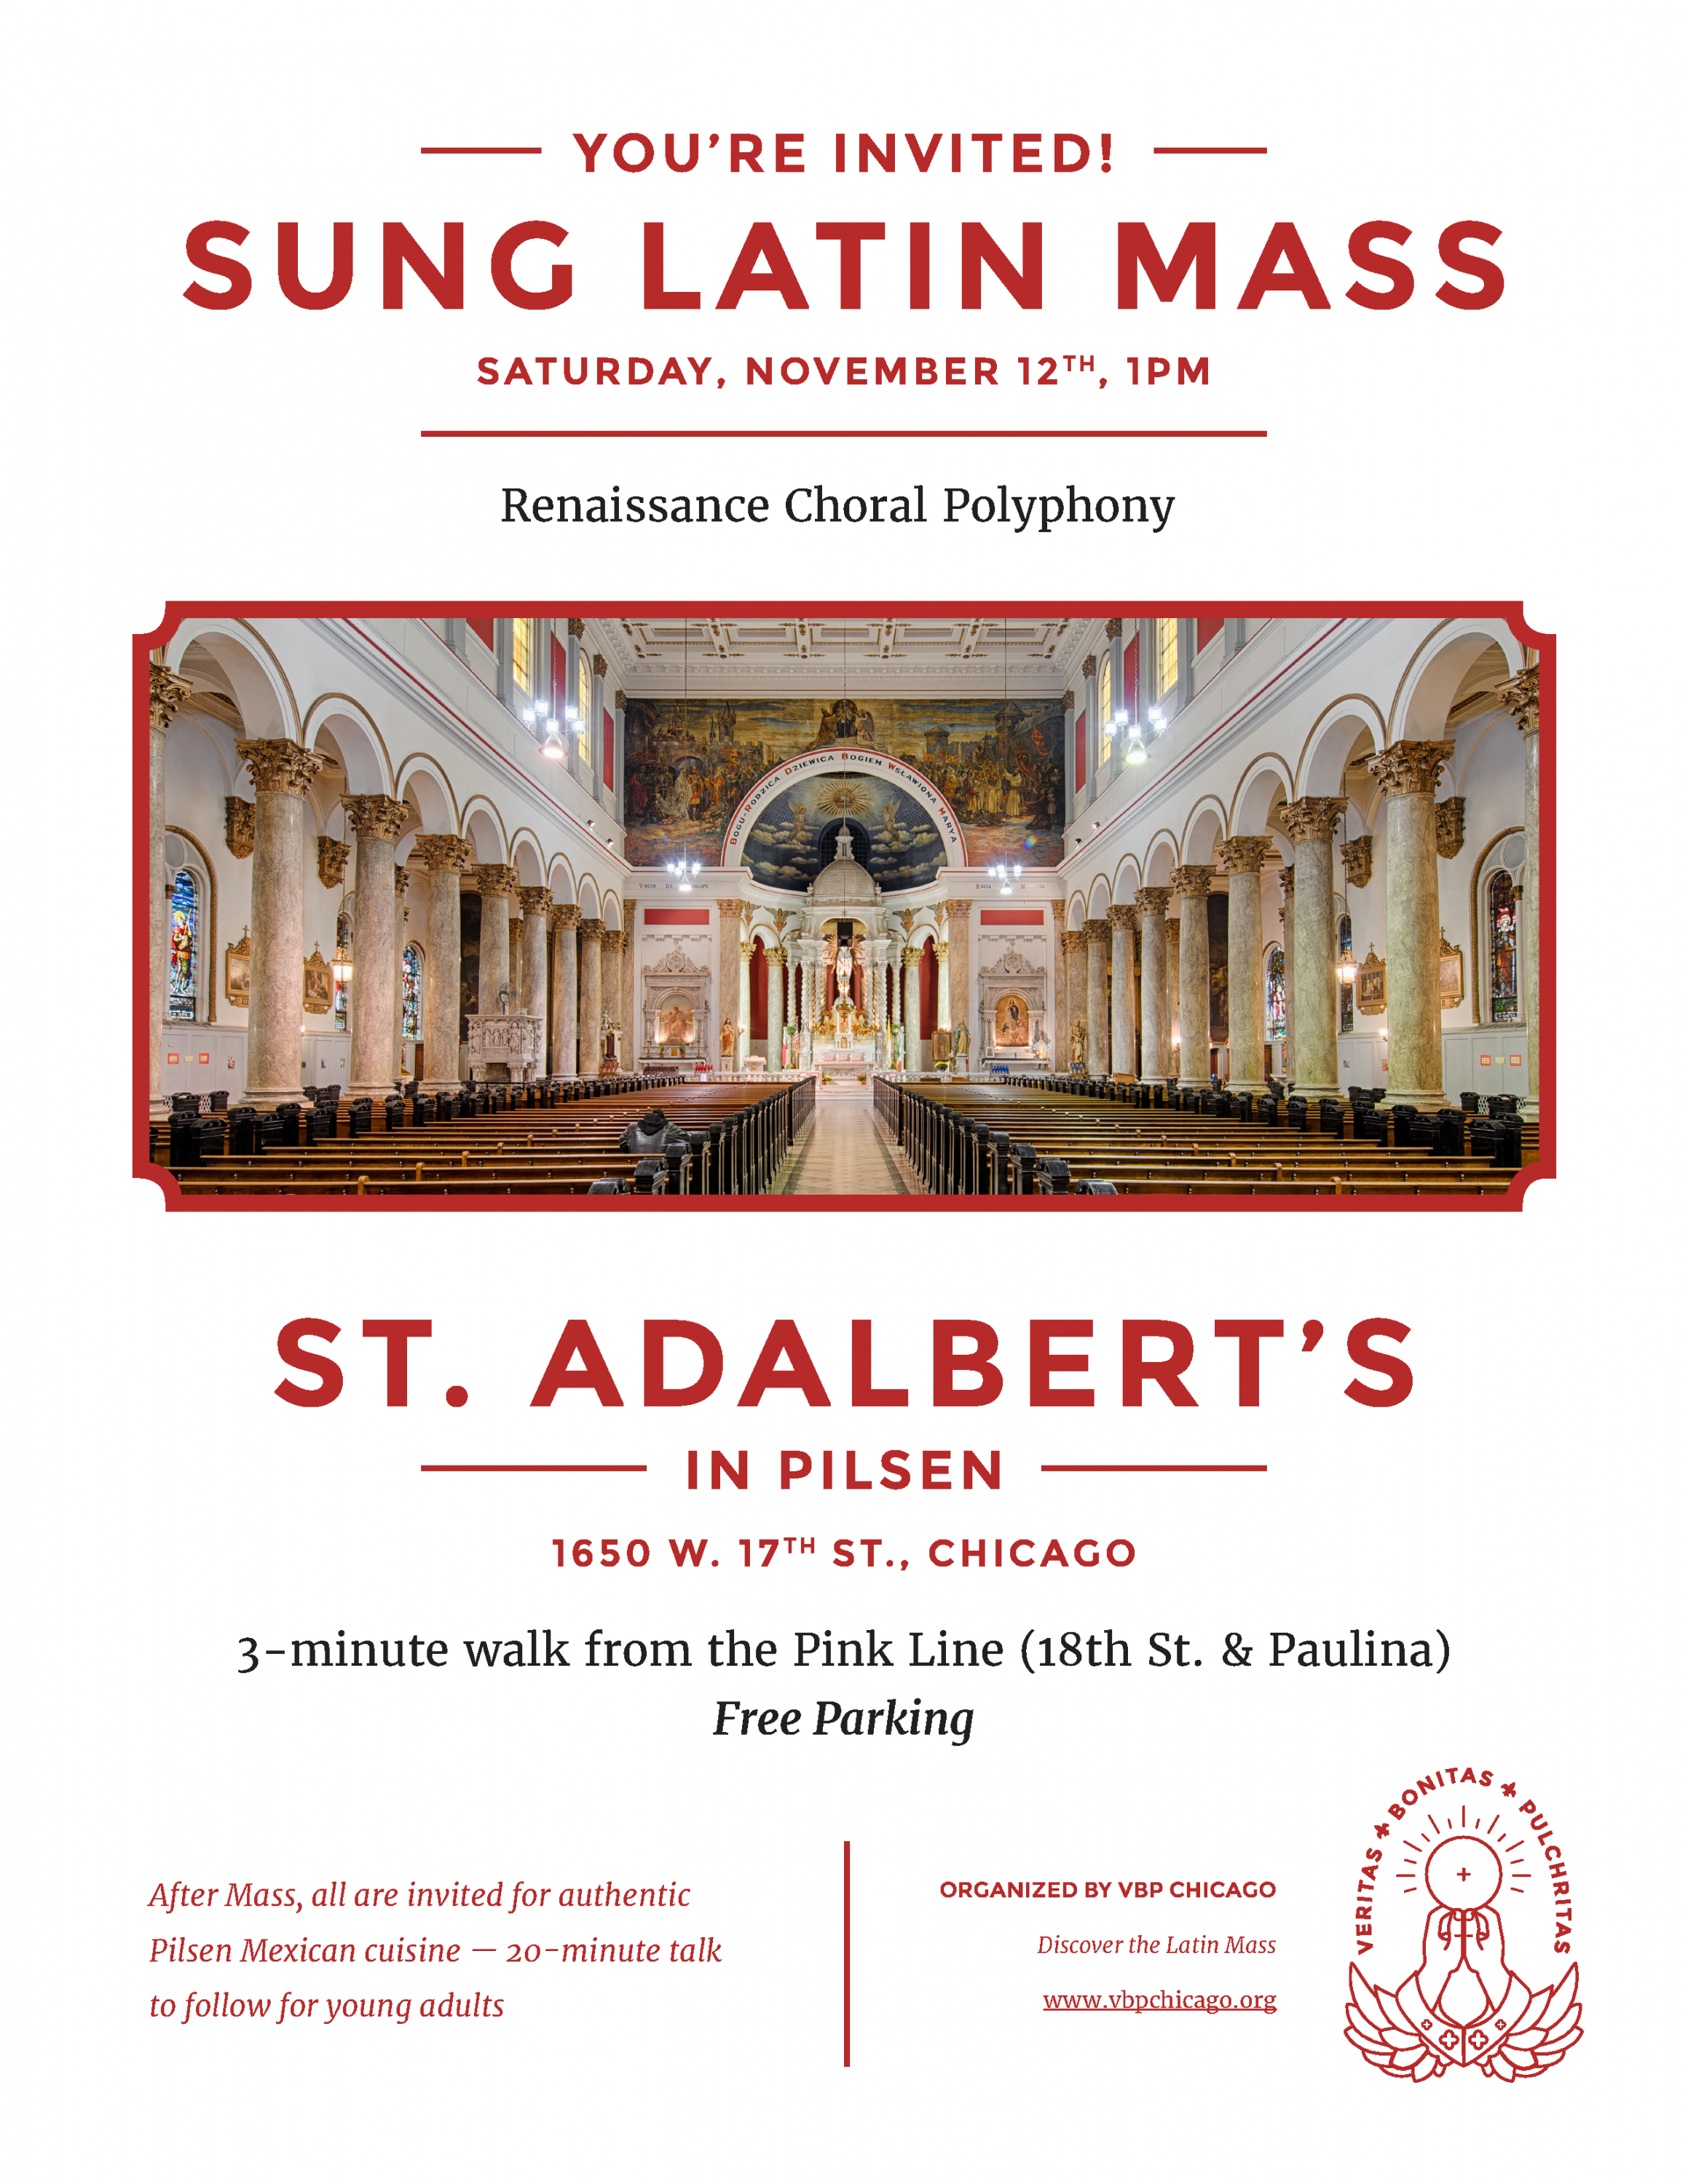 Special Event at St. Adalbert- Sung Latin Mass- Saturday November 12